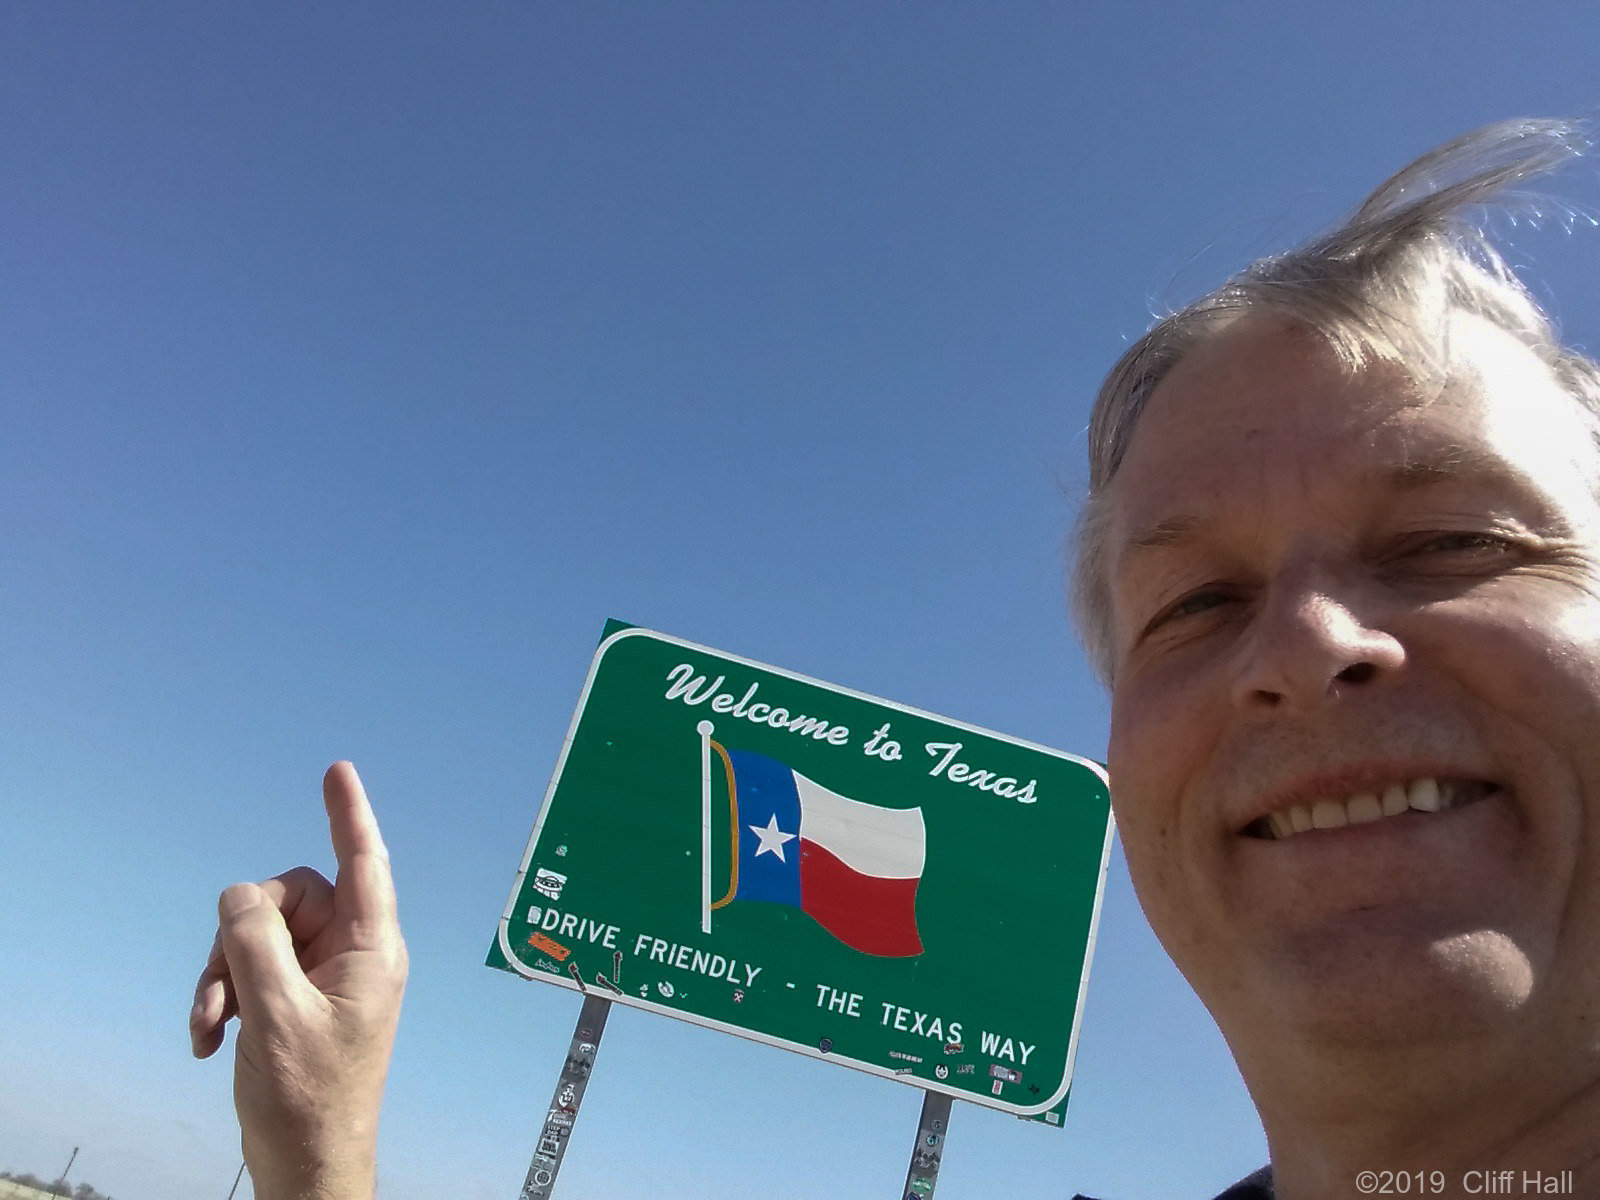 Made it to Texas